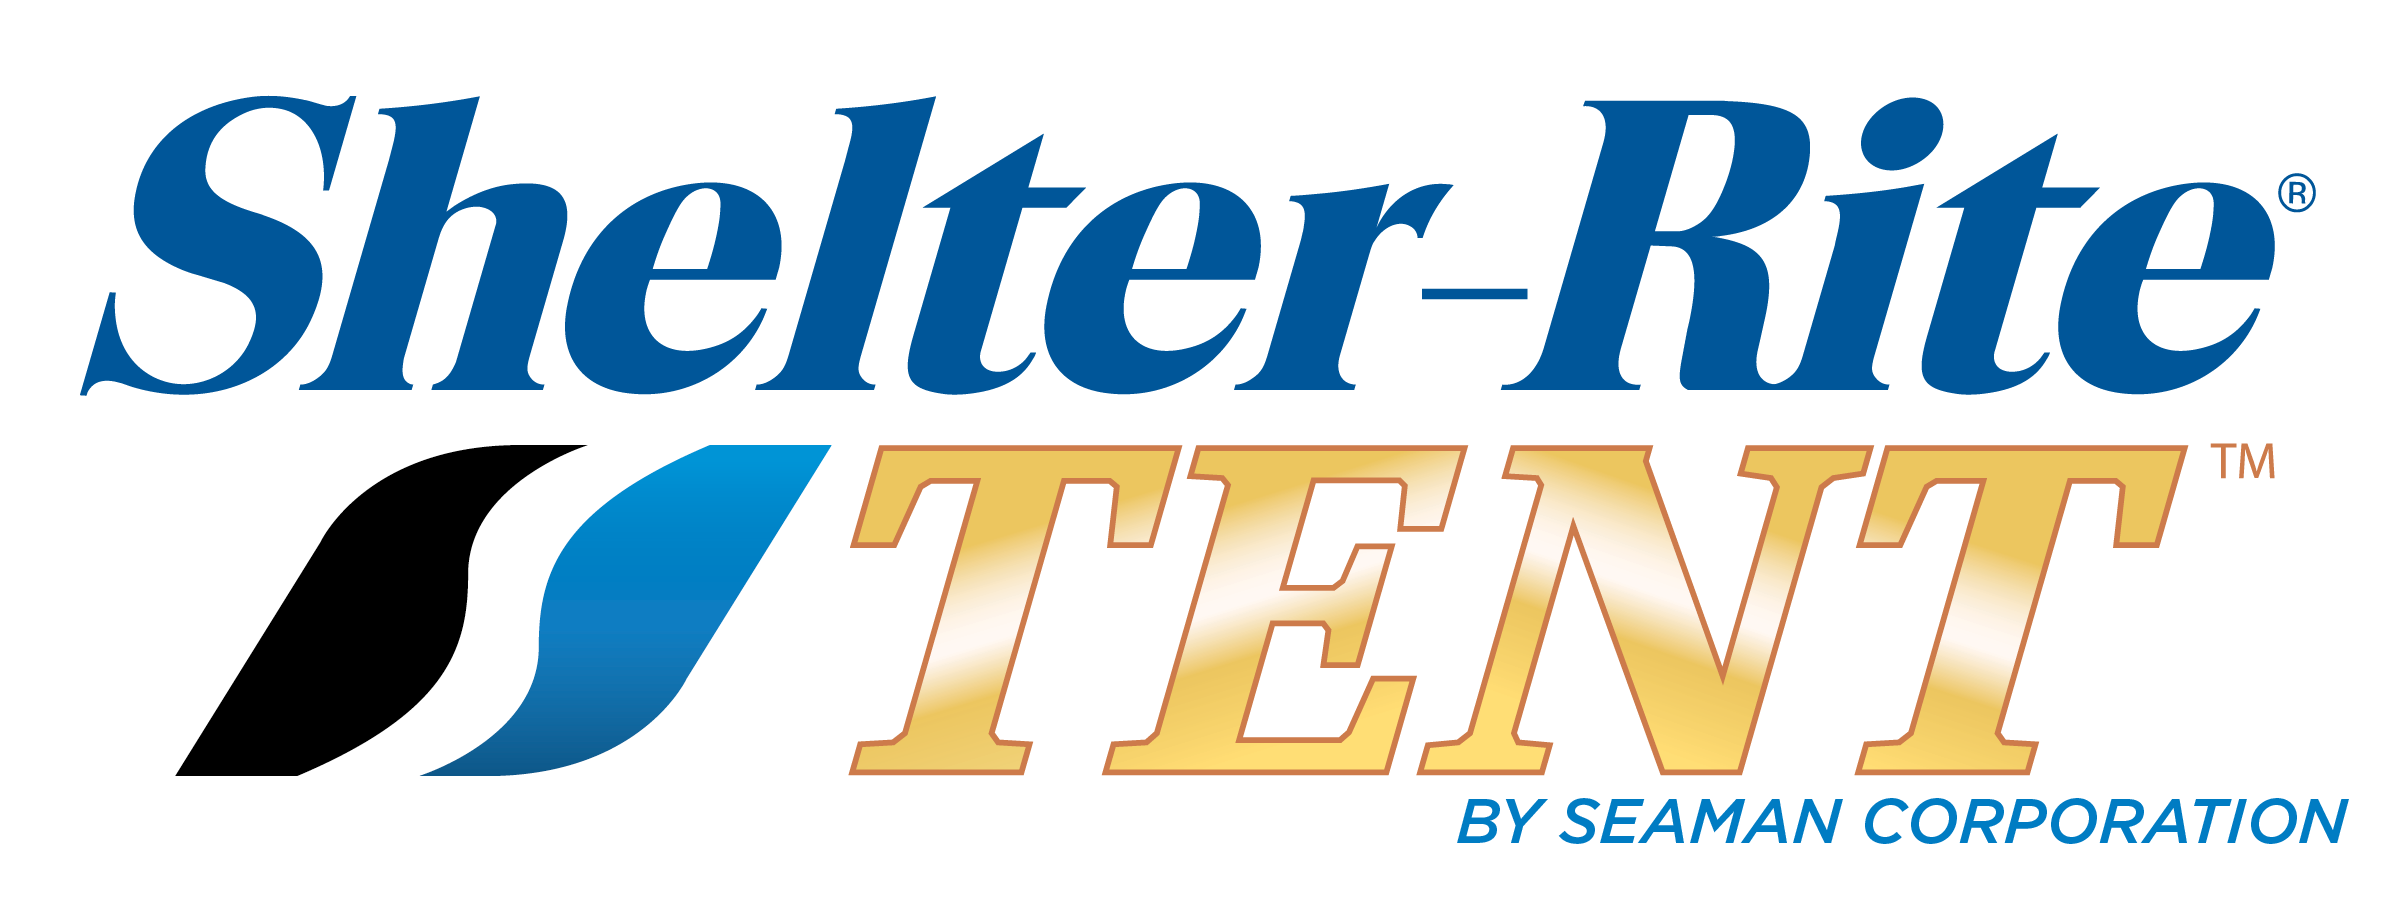 Shelter-Rite Tent logo.png